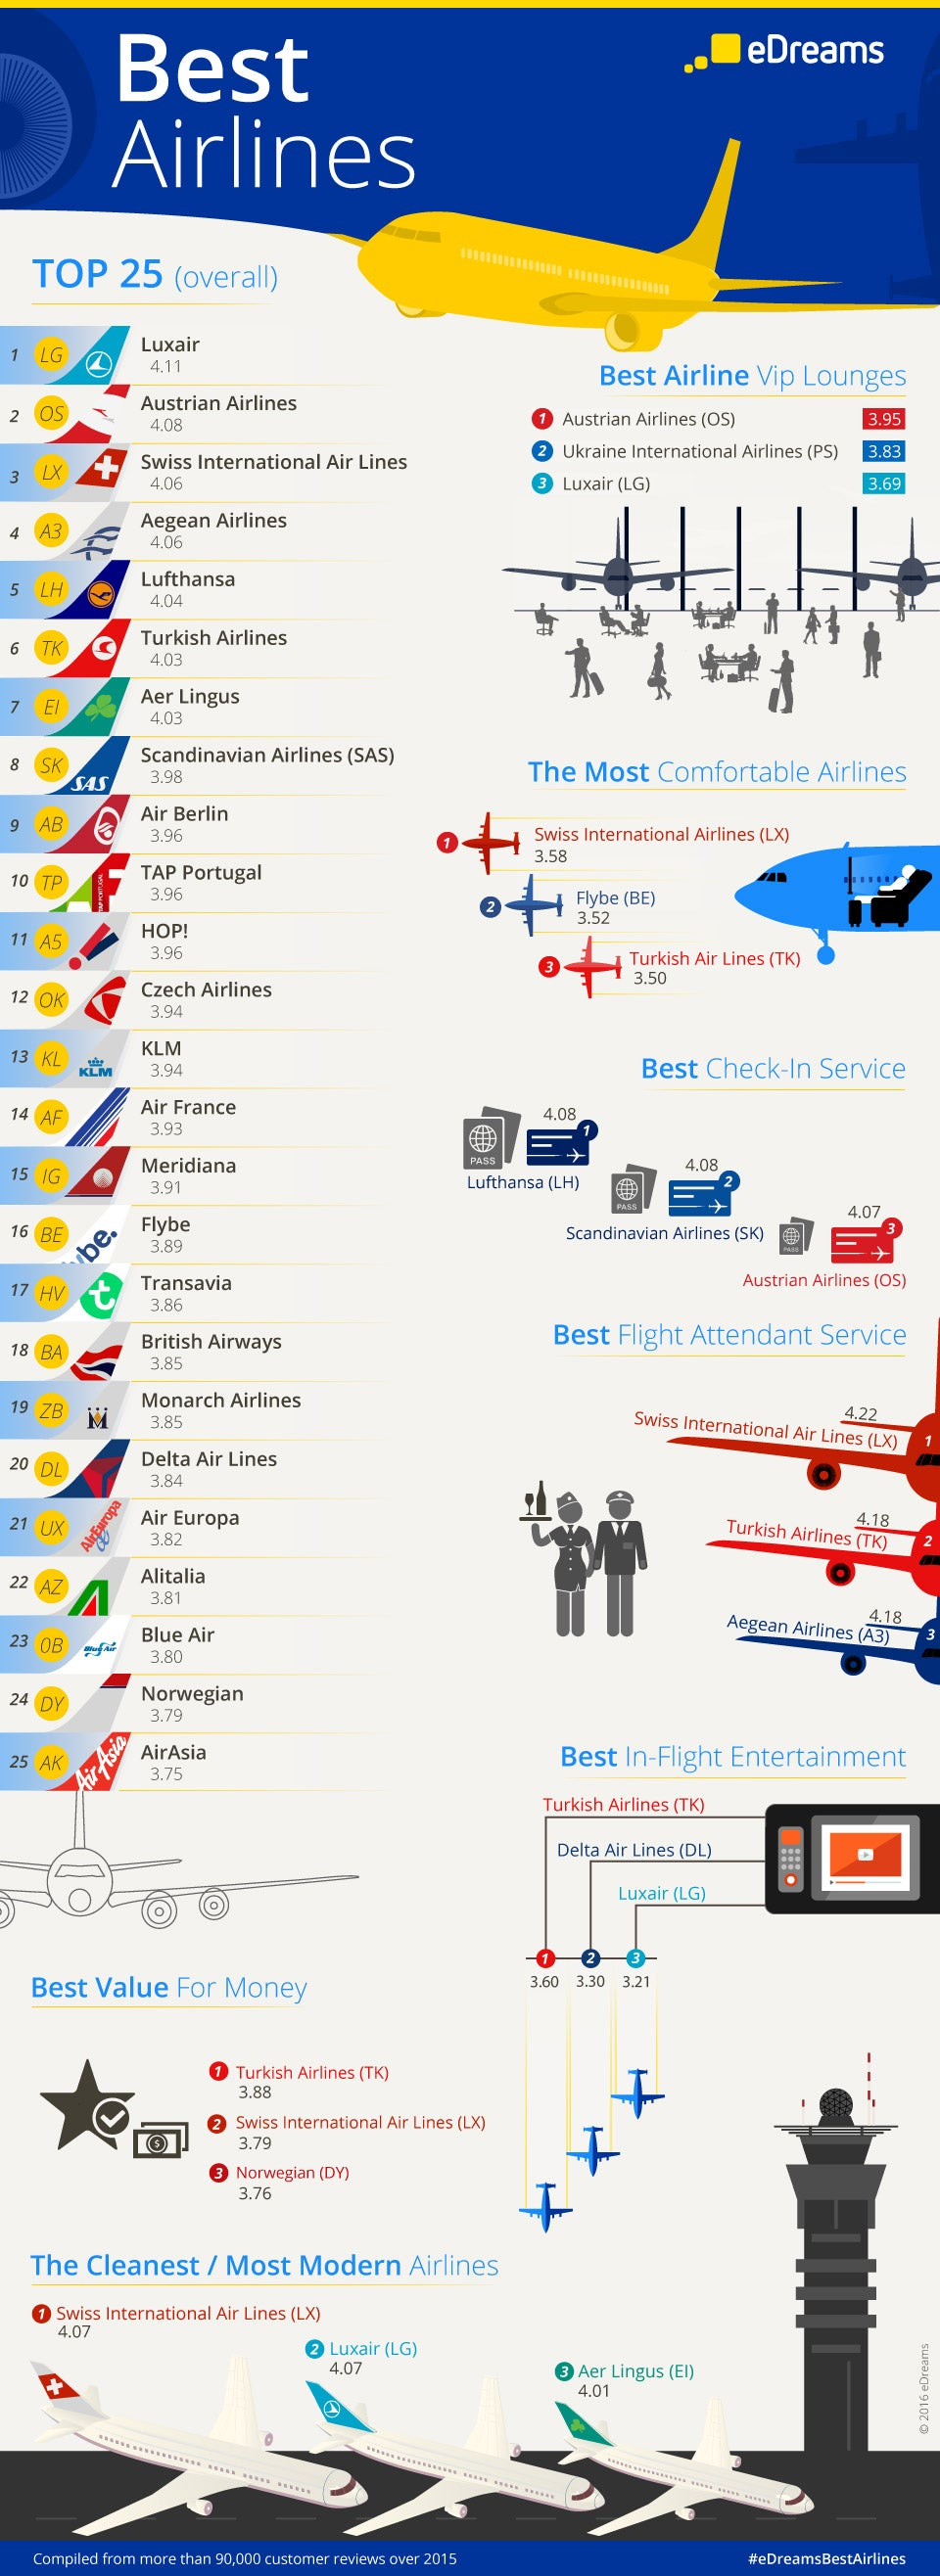 Best Airlines 2015